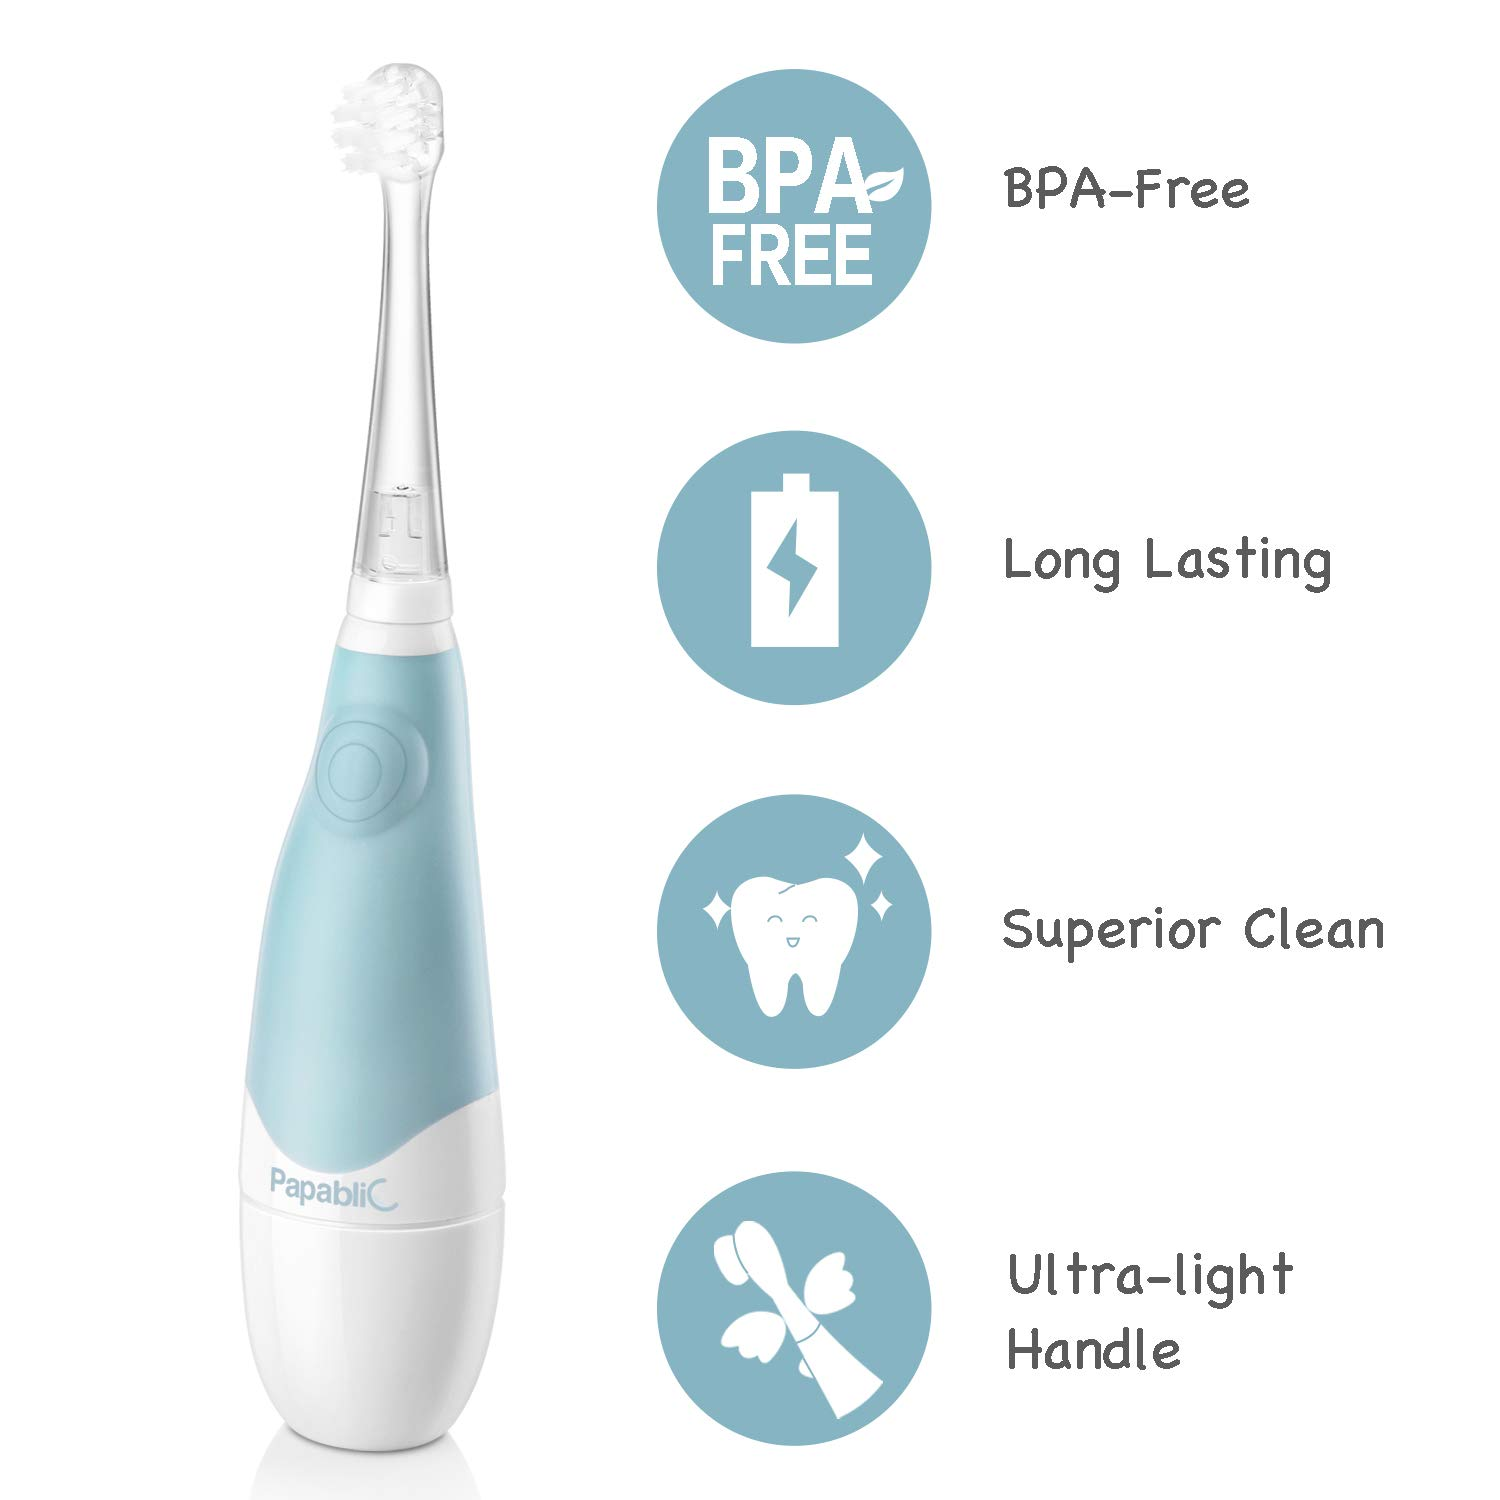 Papablic BabyHandy 2-Stage Sonic Electric Toothbrush for Babies and Toddlers Ages 0-3 Years by Papablic (Image #8)